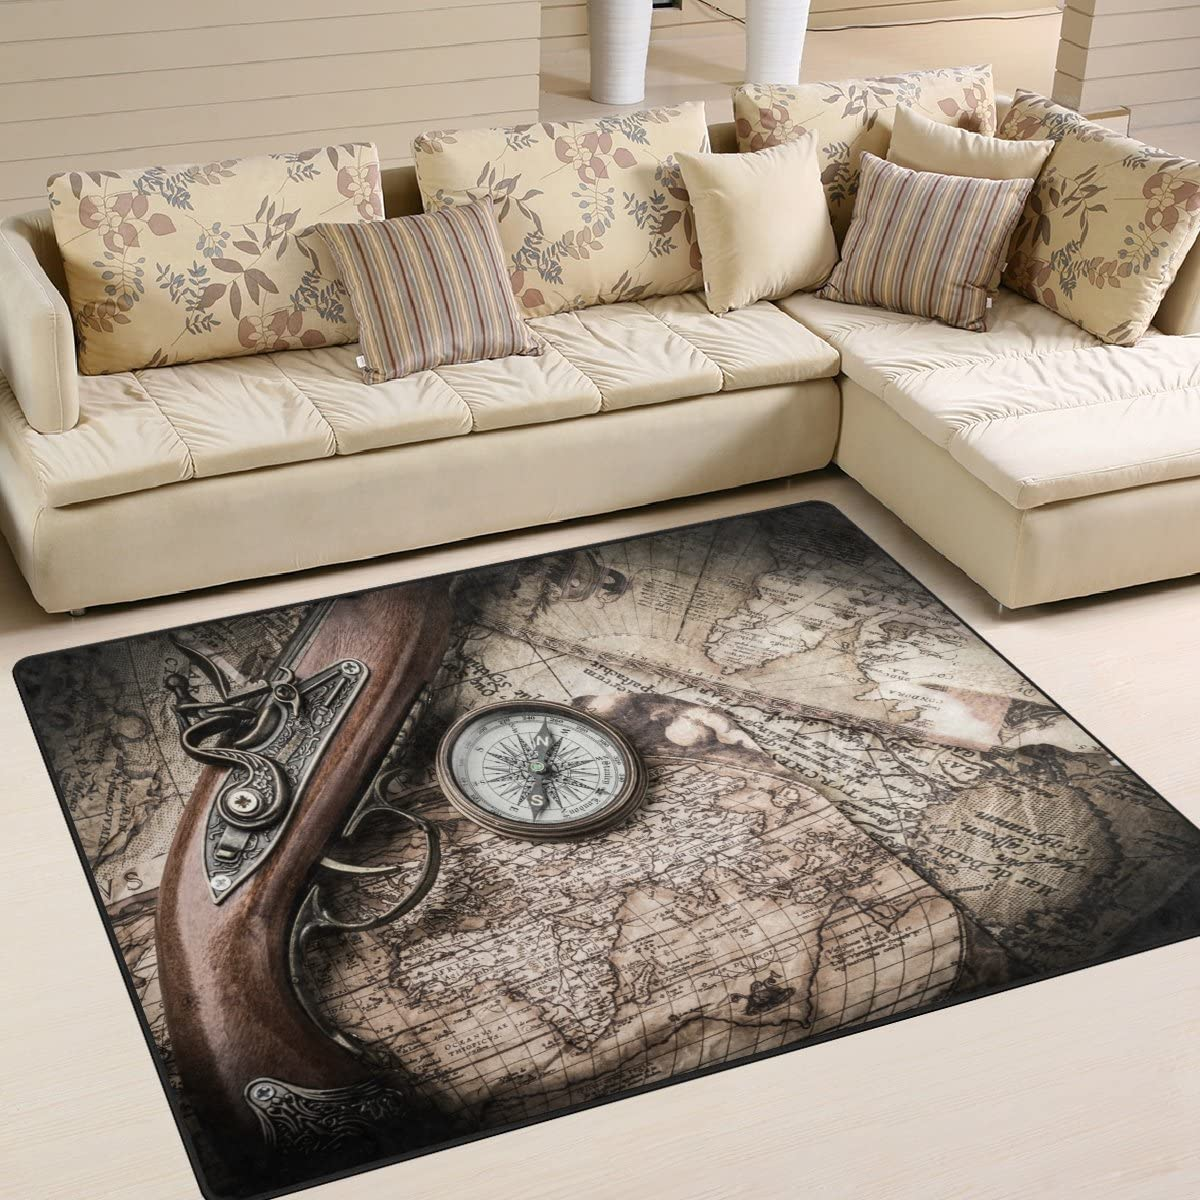 Naanle Navigation Area Rug 4'x5' Max Kansas City Mall 80% OFF and Polyester Old Map Compass